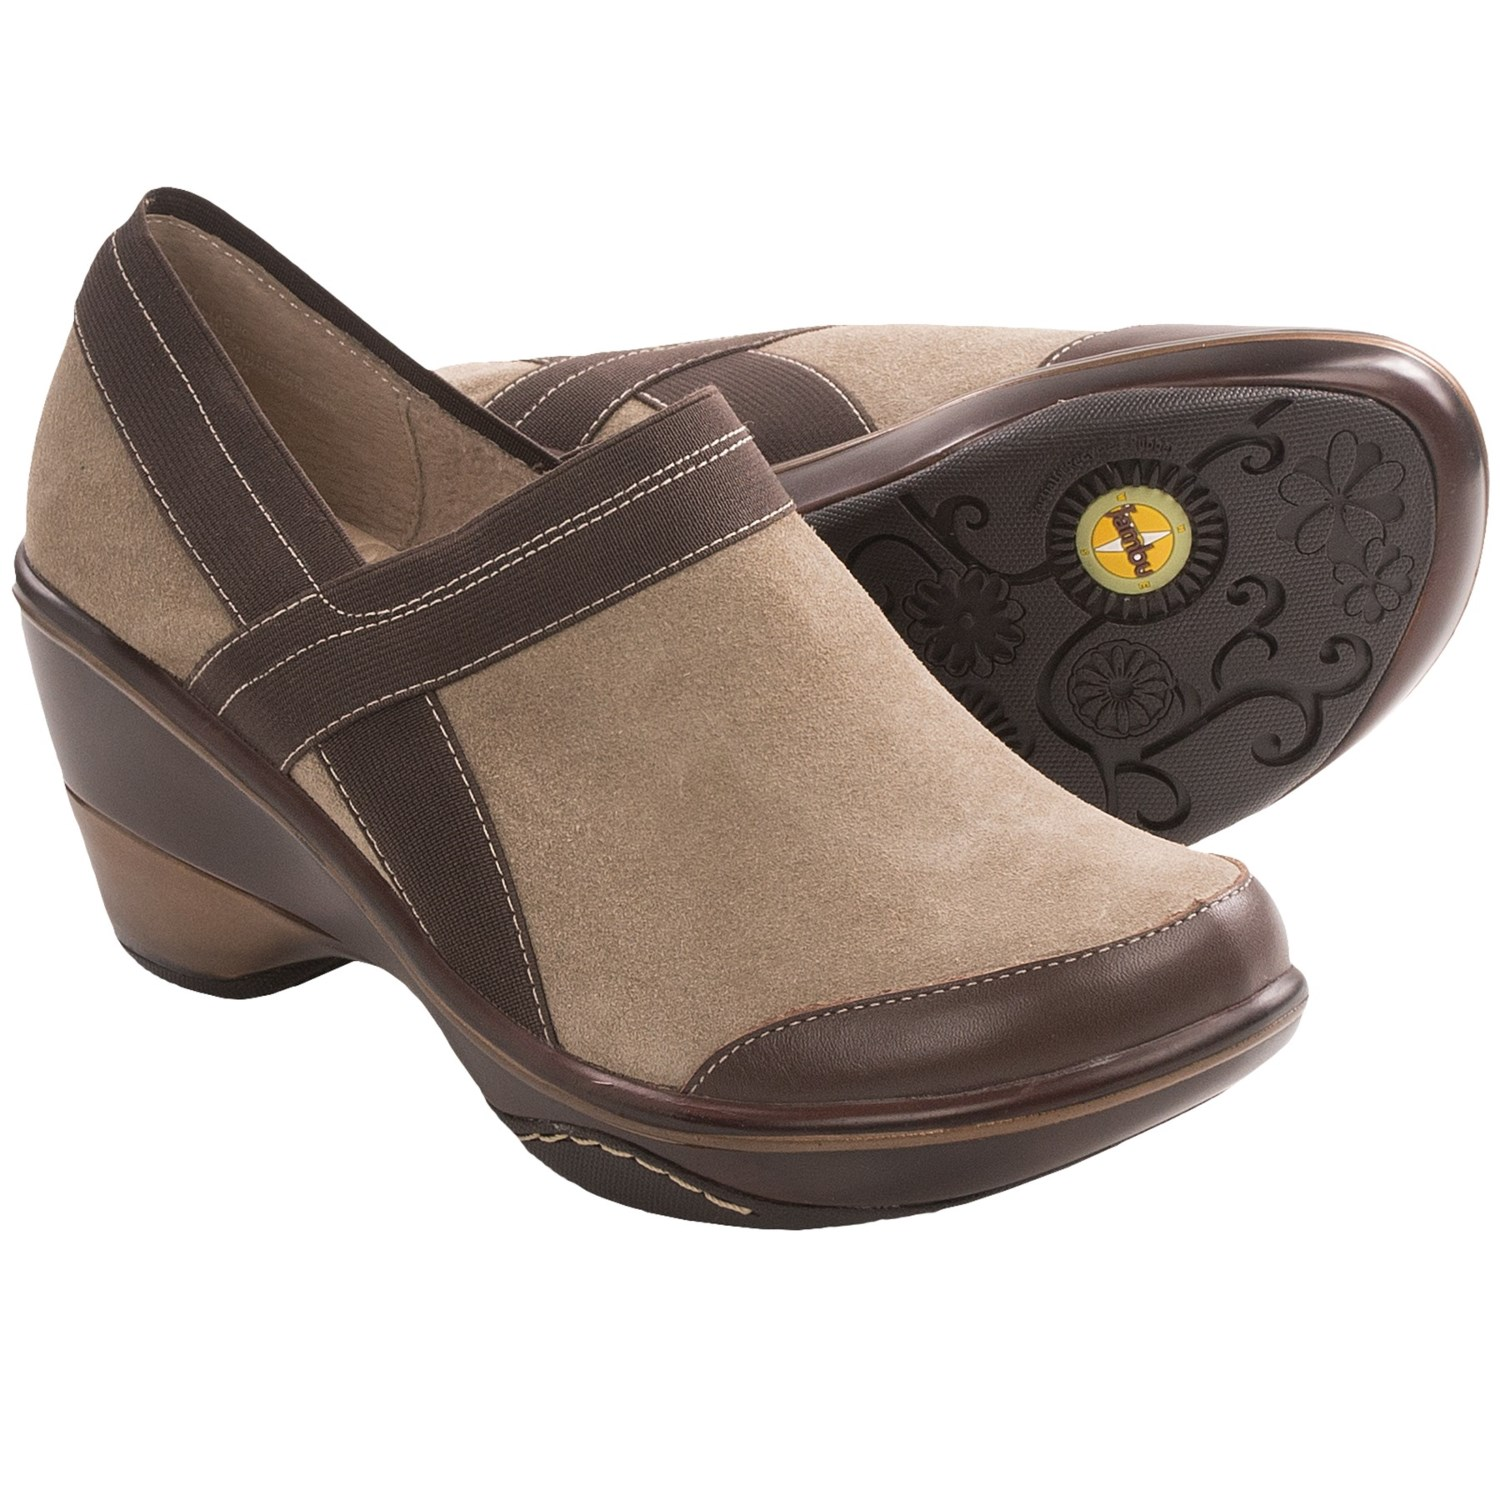 Jambu Cali-Classic Shoes - Clogs (For Women) in Khaki